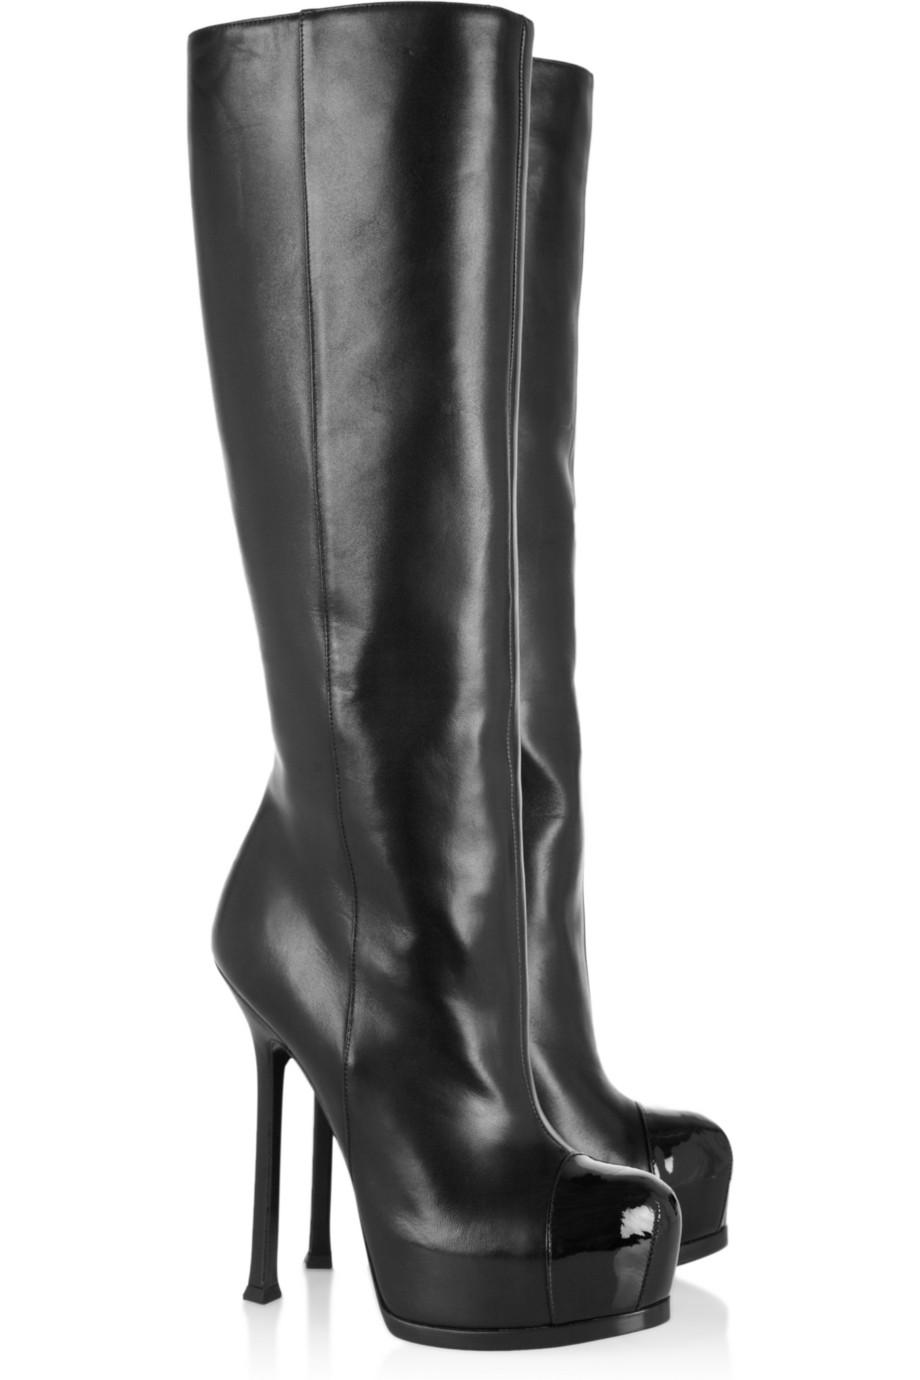 Looking for cheap knee high boots or sexy thigh high boots then shop Pink Basis to find sexy boots in cute colors like pink. Offering cheap boots prices on women's boots from flat soles to high heels that were made for walking shop our sexy boot collection now.